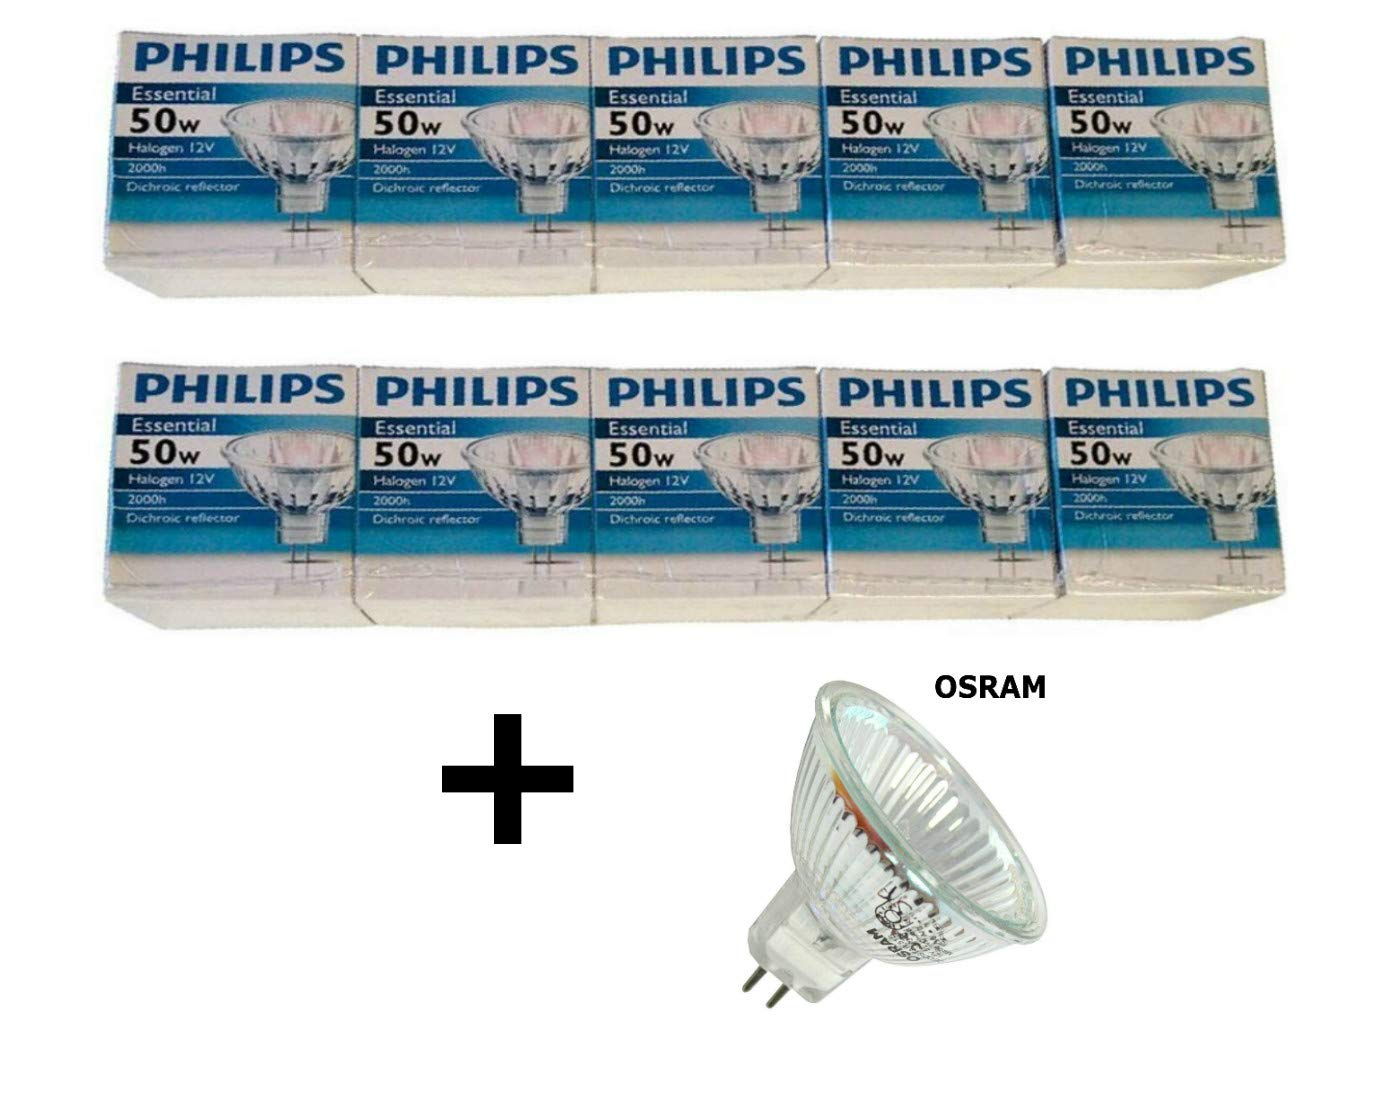 Philips Halogen Light Bulbs/Landscape Indoor or Outdoor Flood/Dimmable 50w Mr16 12v 2 Pin 36 Angle Gu5.3 Base (10 Packs) Bundle with Osram Decostar 51S 41370 WFL LC (1 Pack)